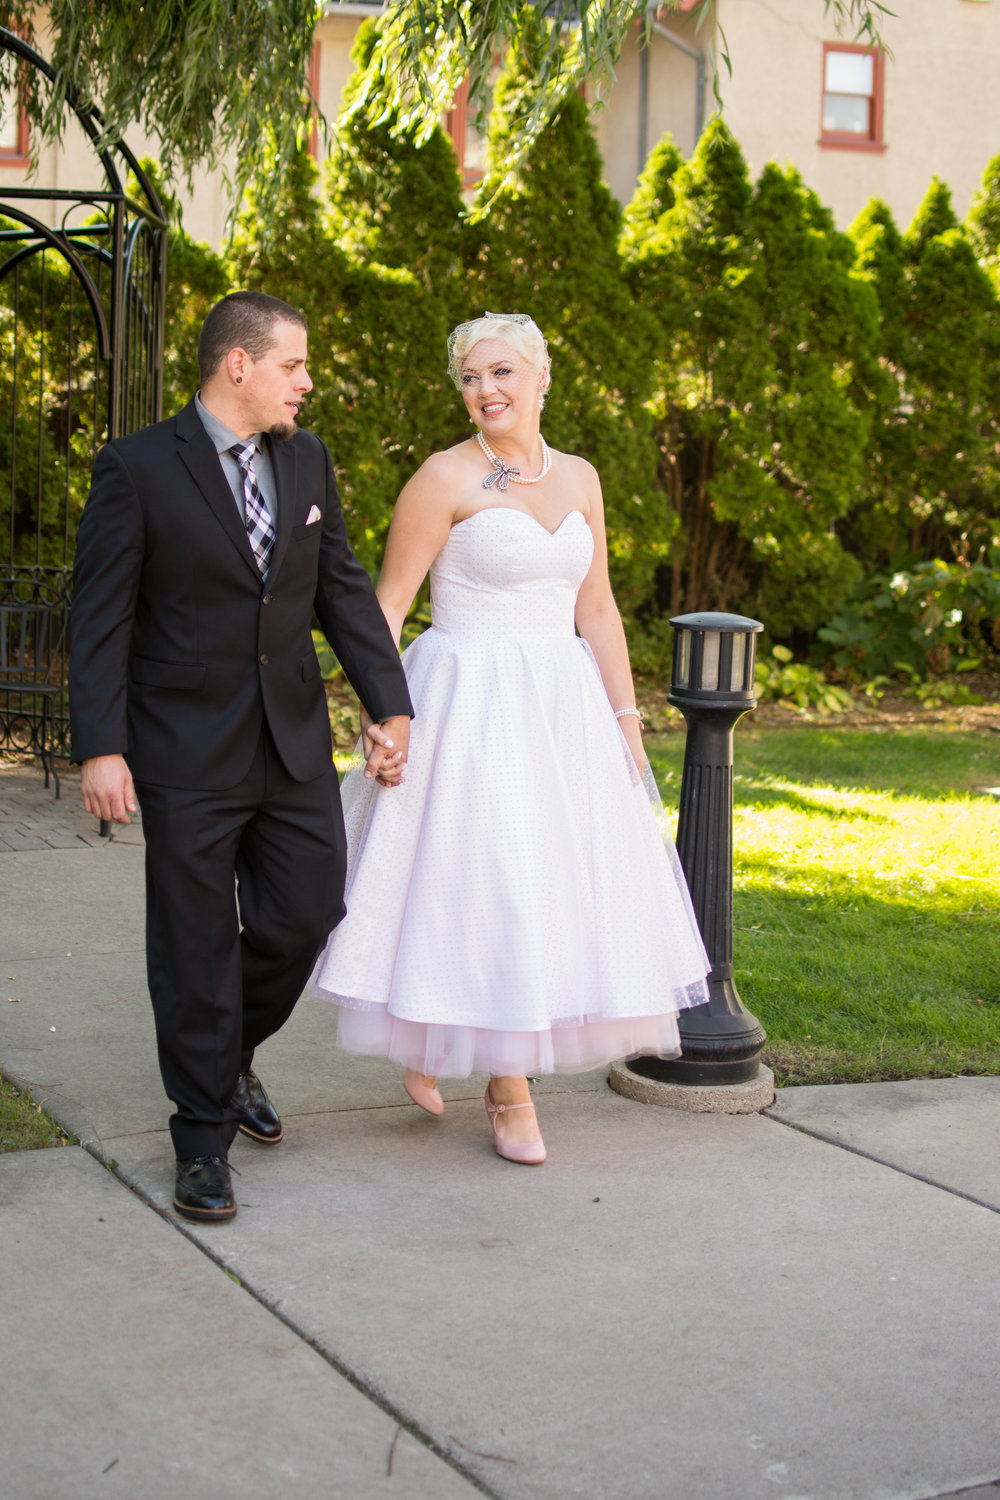 amanda+tom_wedding (217 of 592).jpg